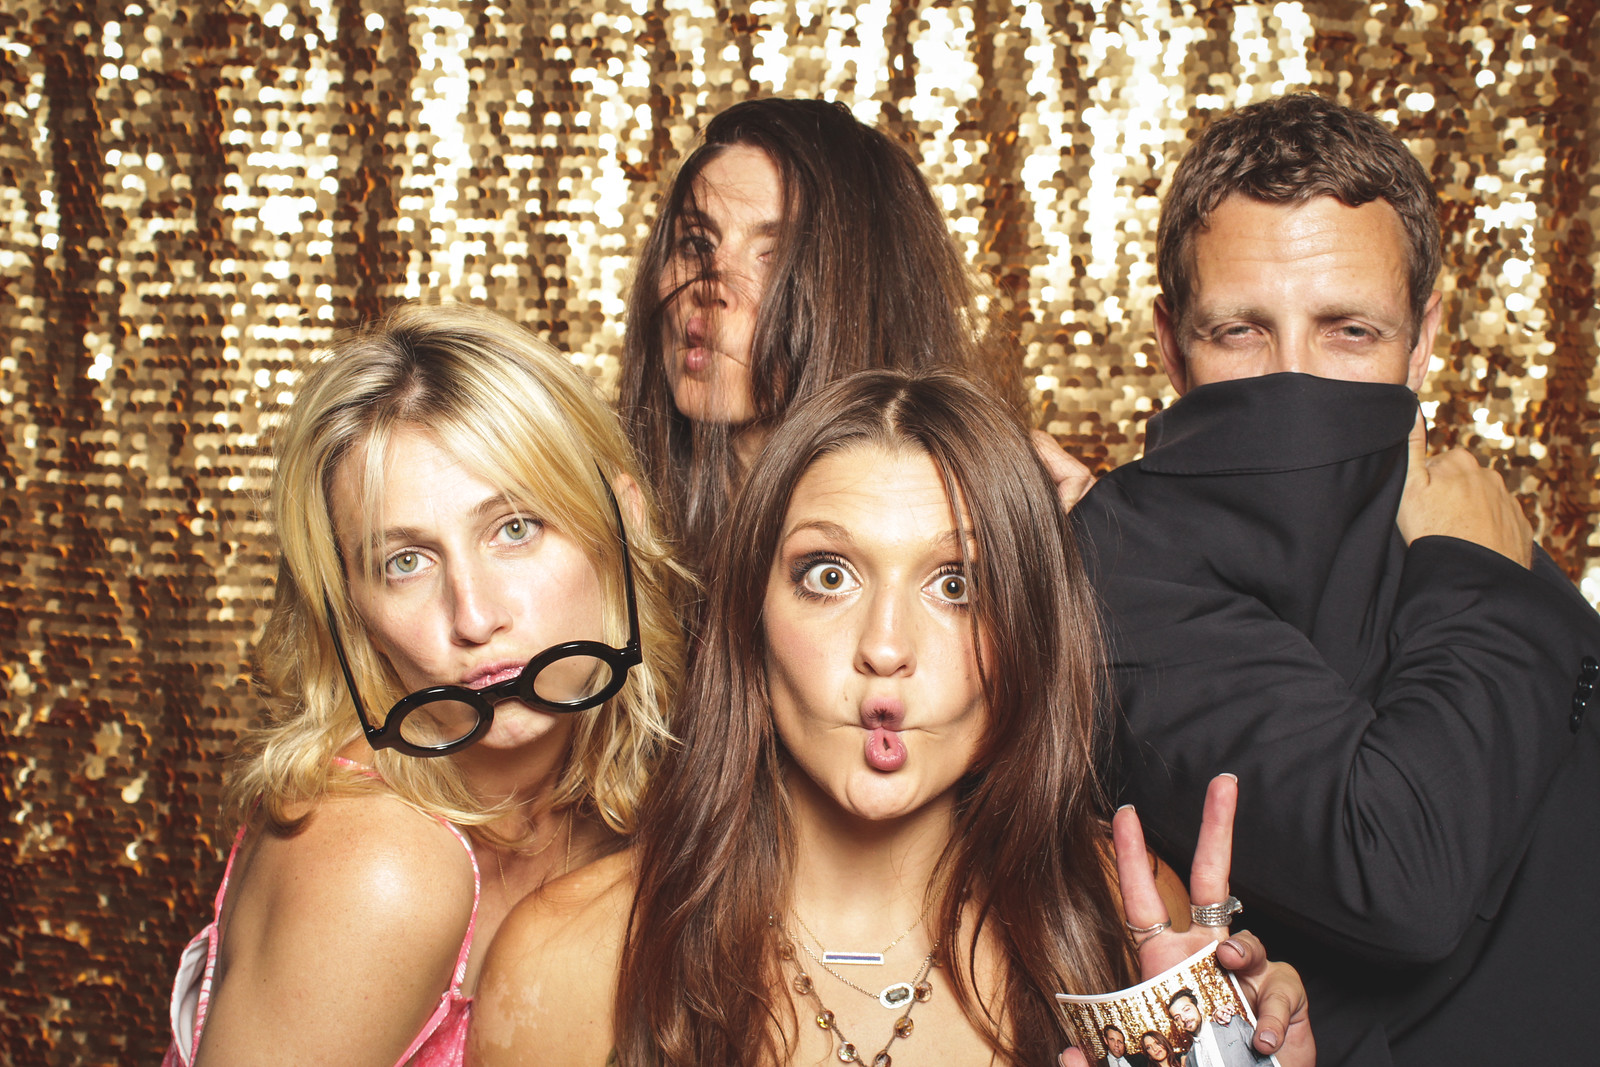 We come in peace. Your photo booth should match the needs of your event.